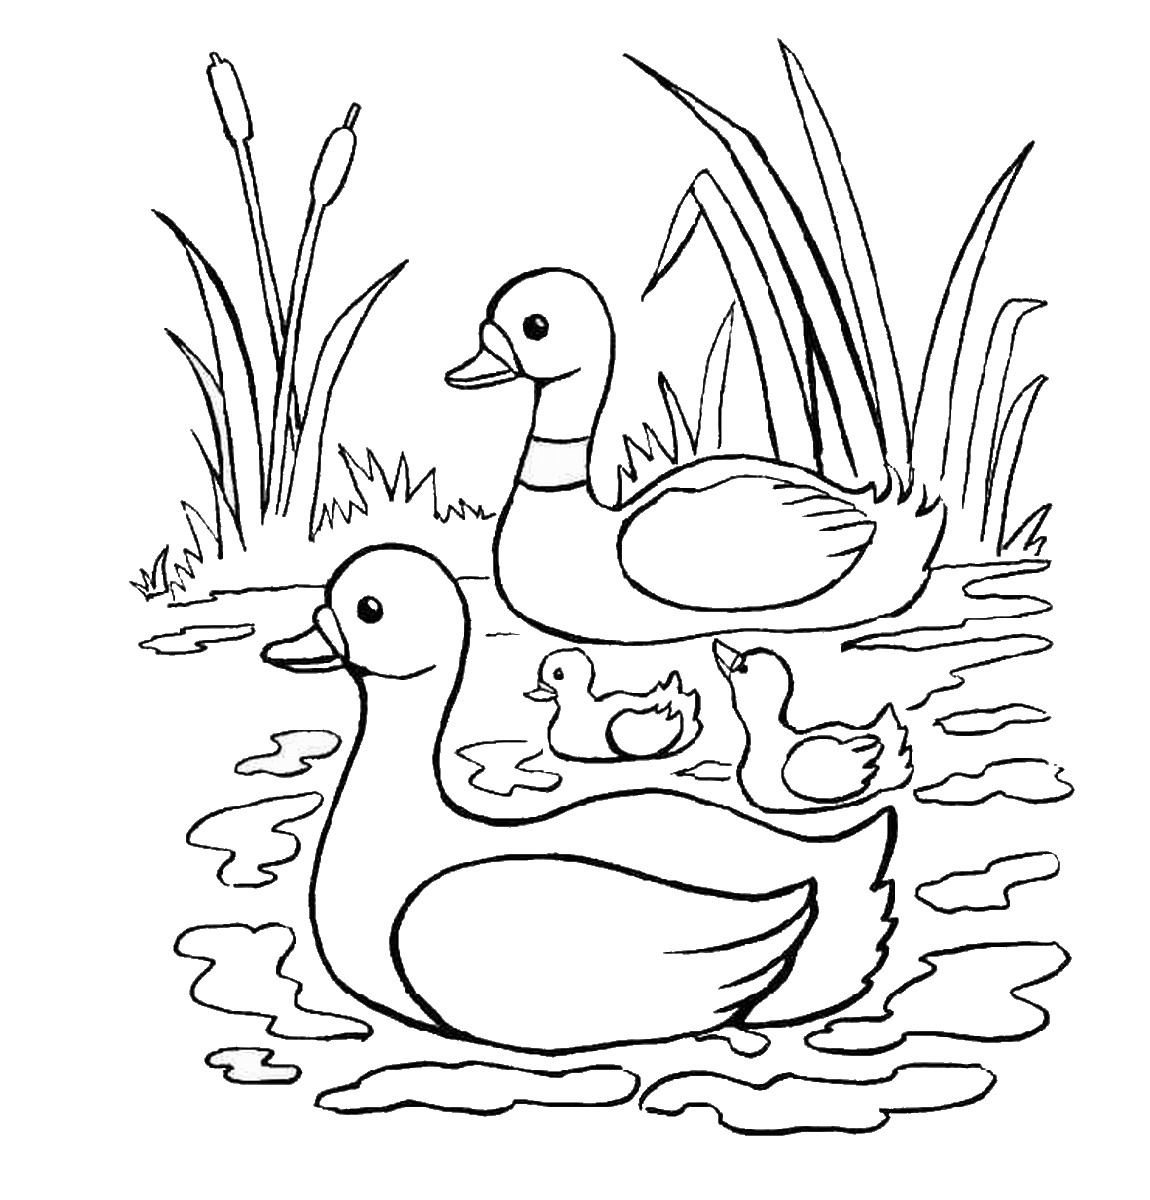 for Ducks coloring pages